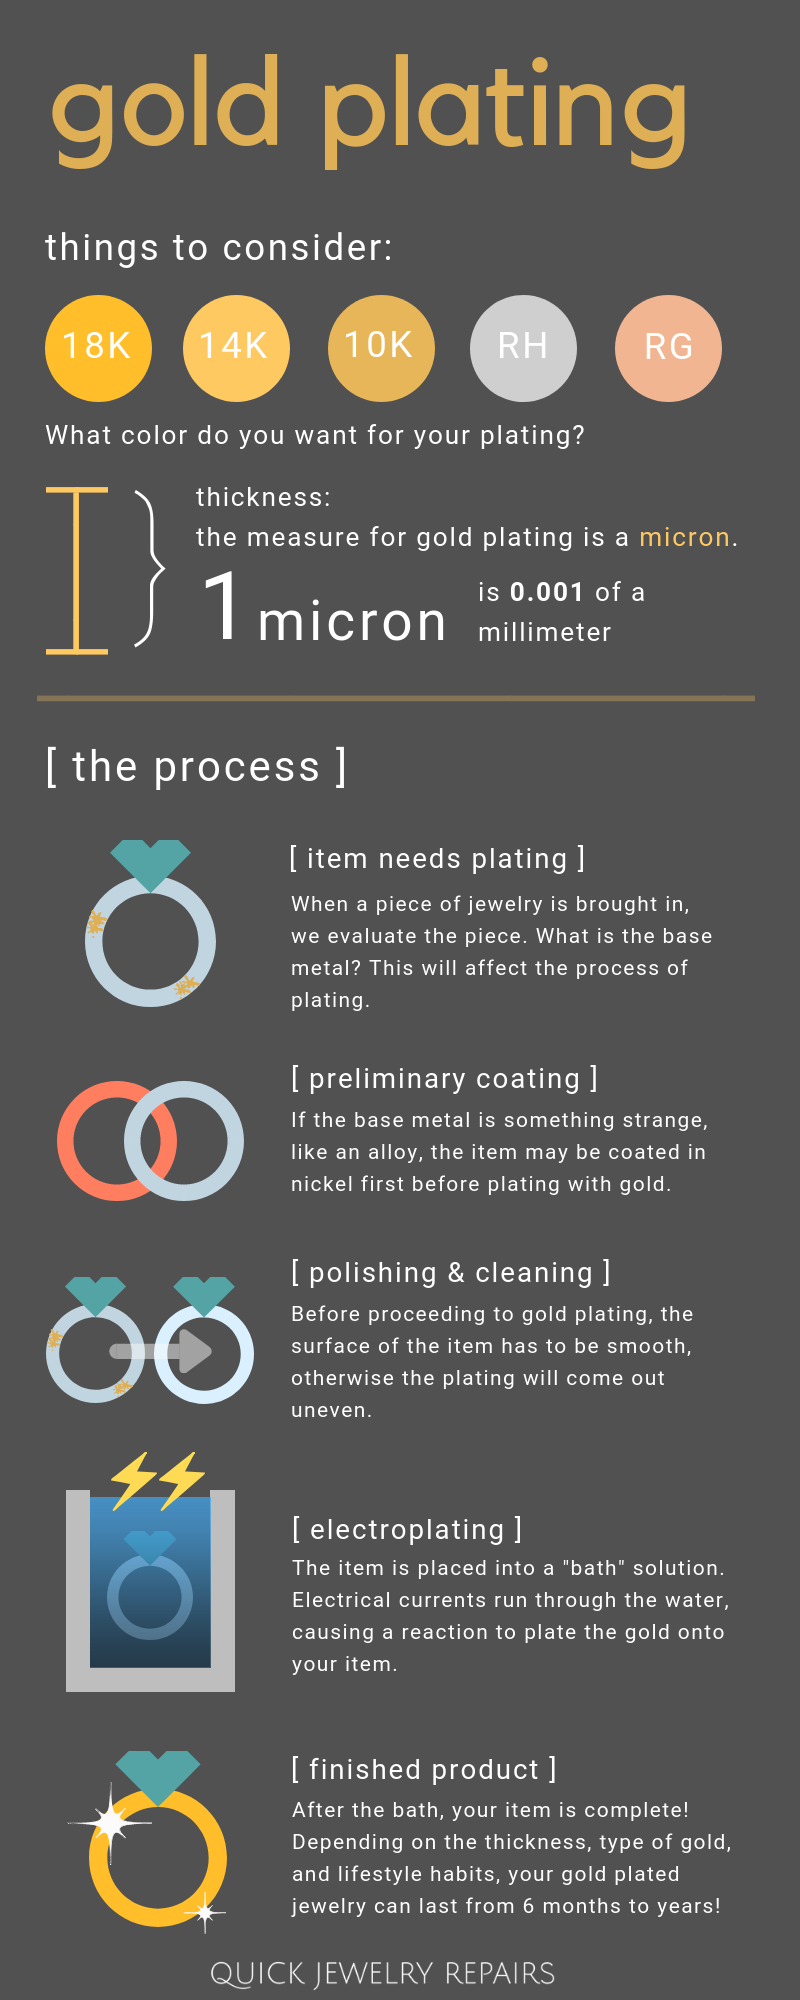 gold-plating-process